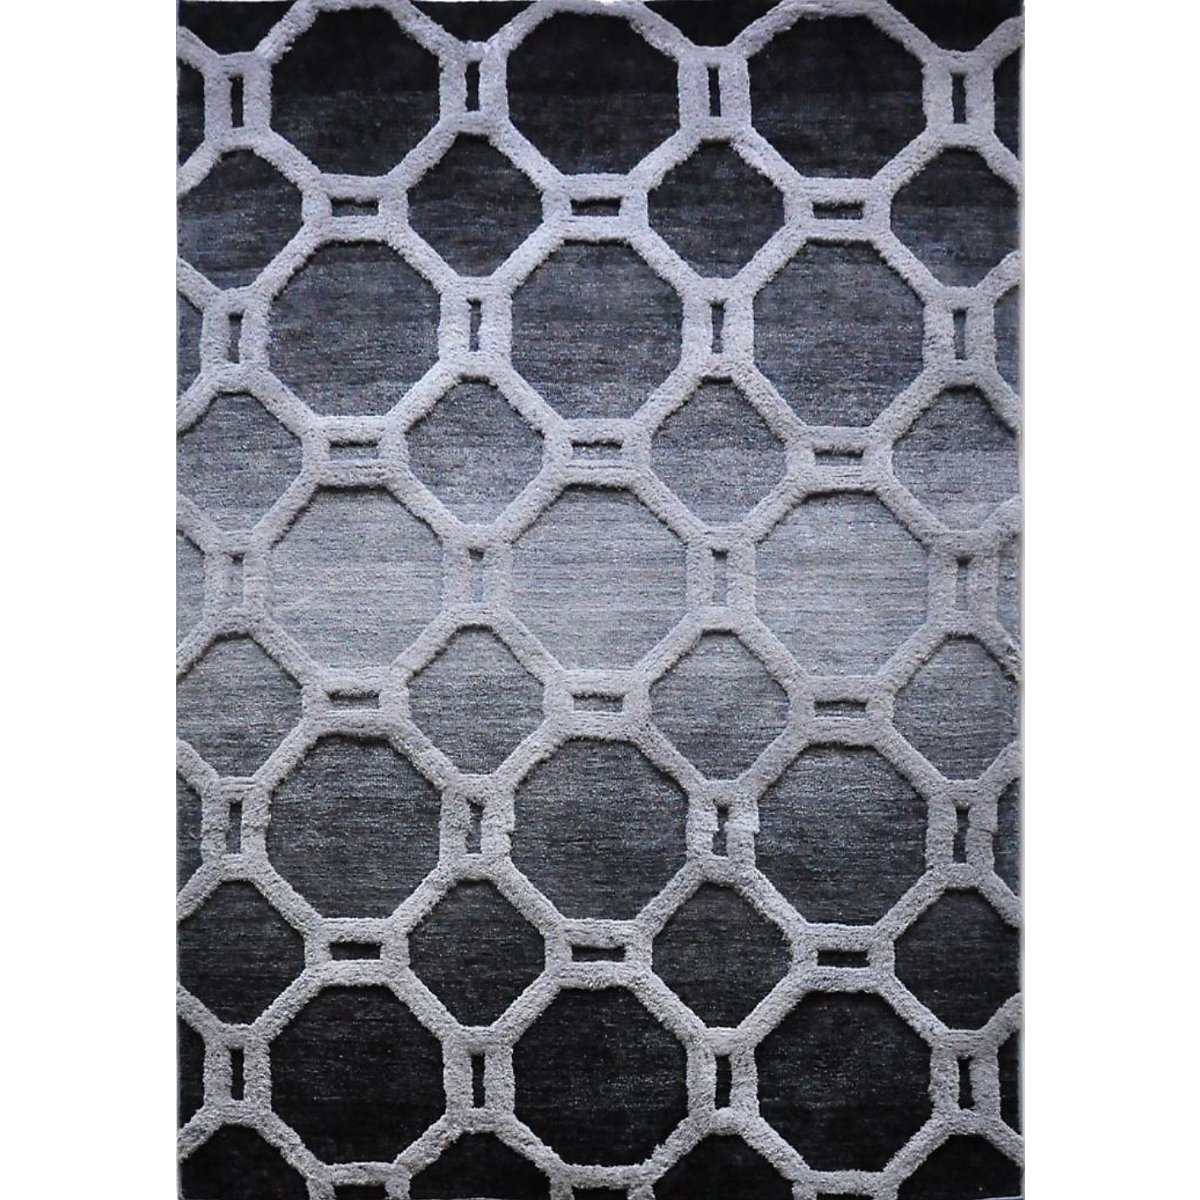 Louvre Dark Gray 5X8 Area Rug